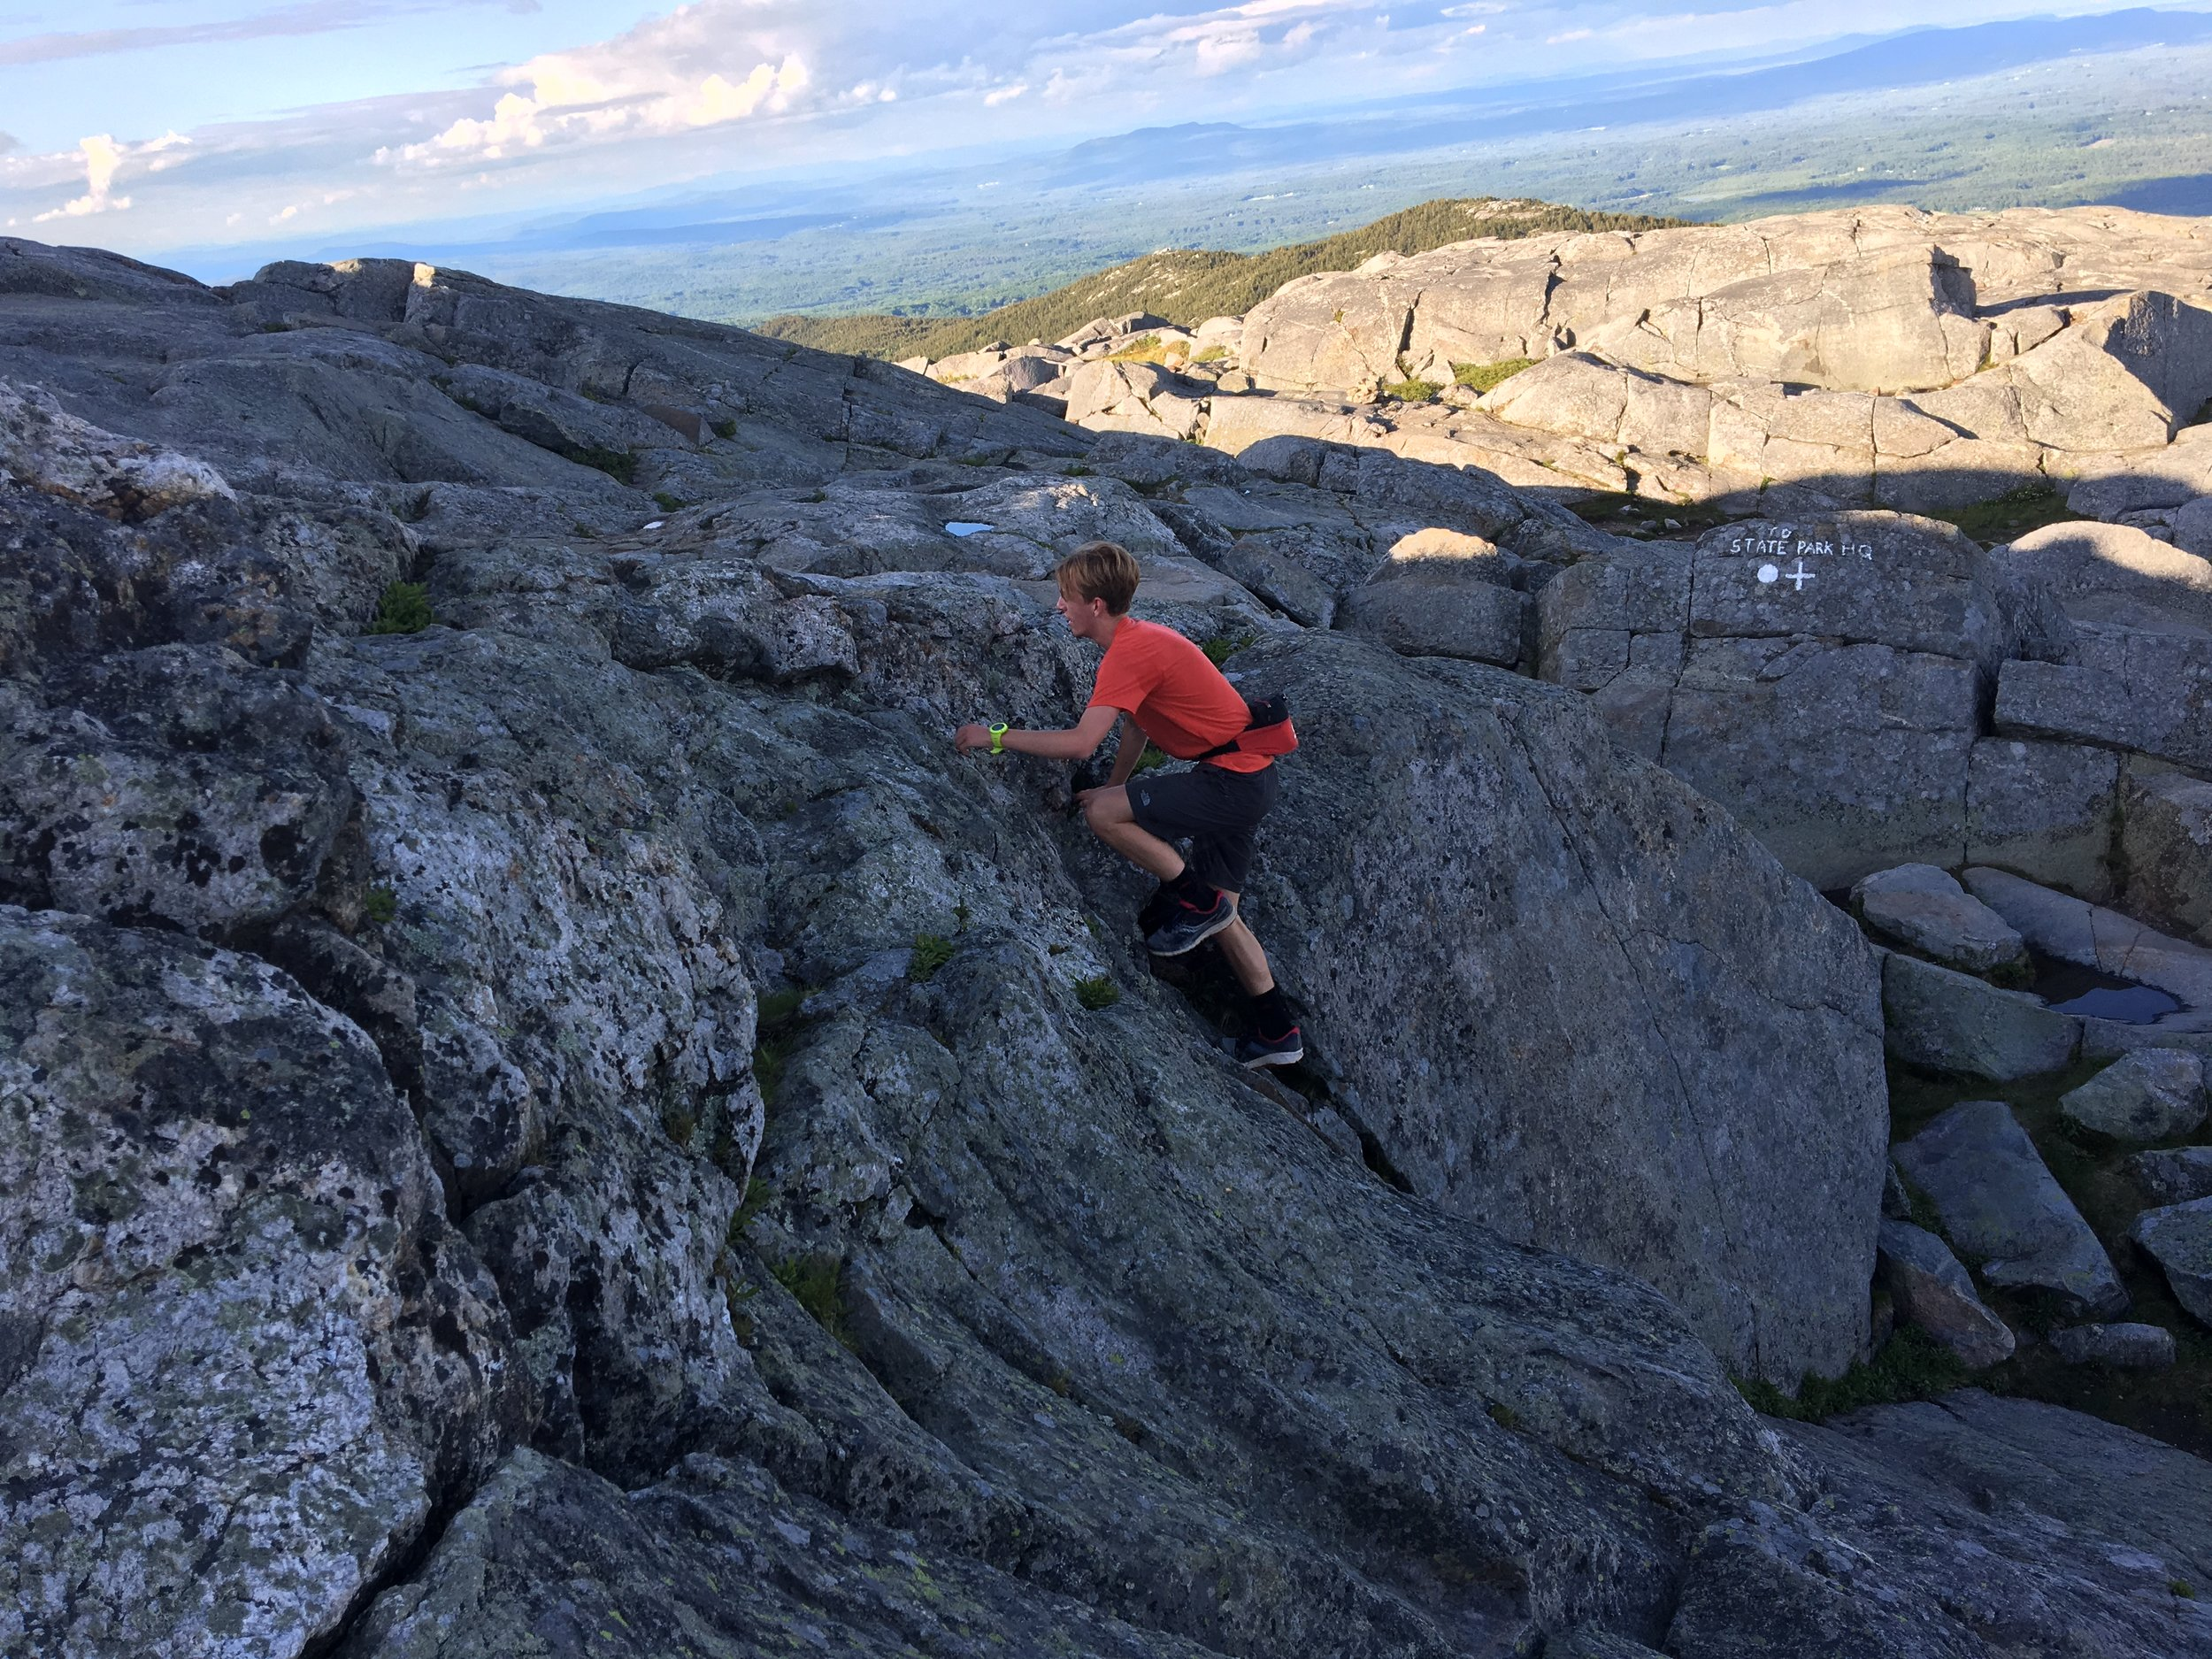 Clint must have set a new school record by summiting in just over 30'!